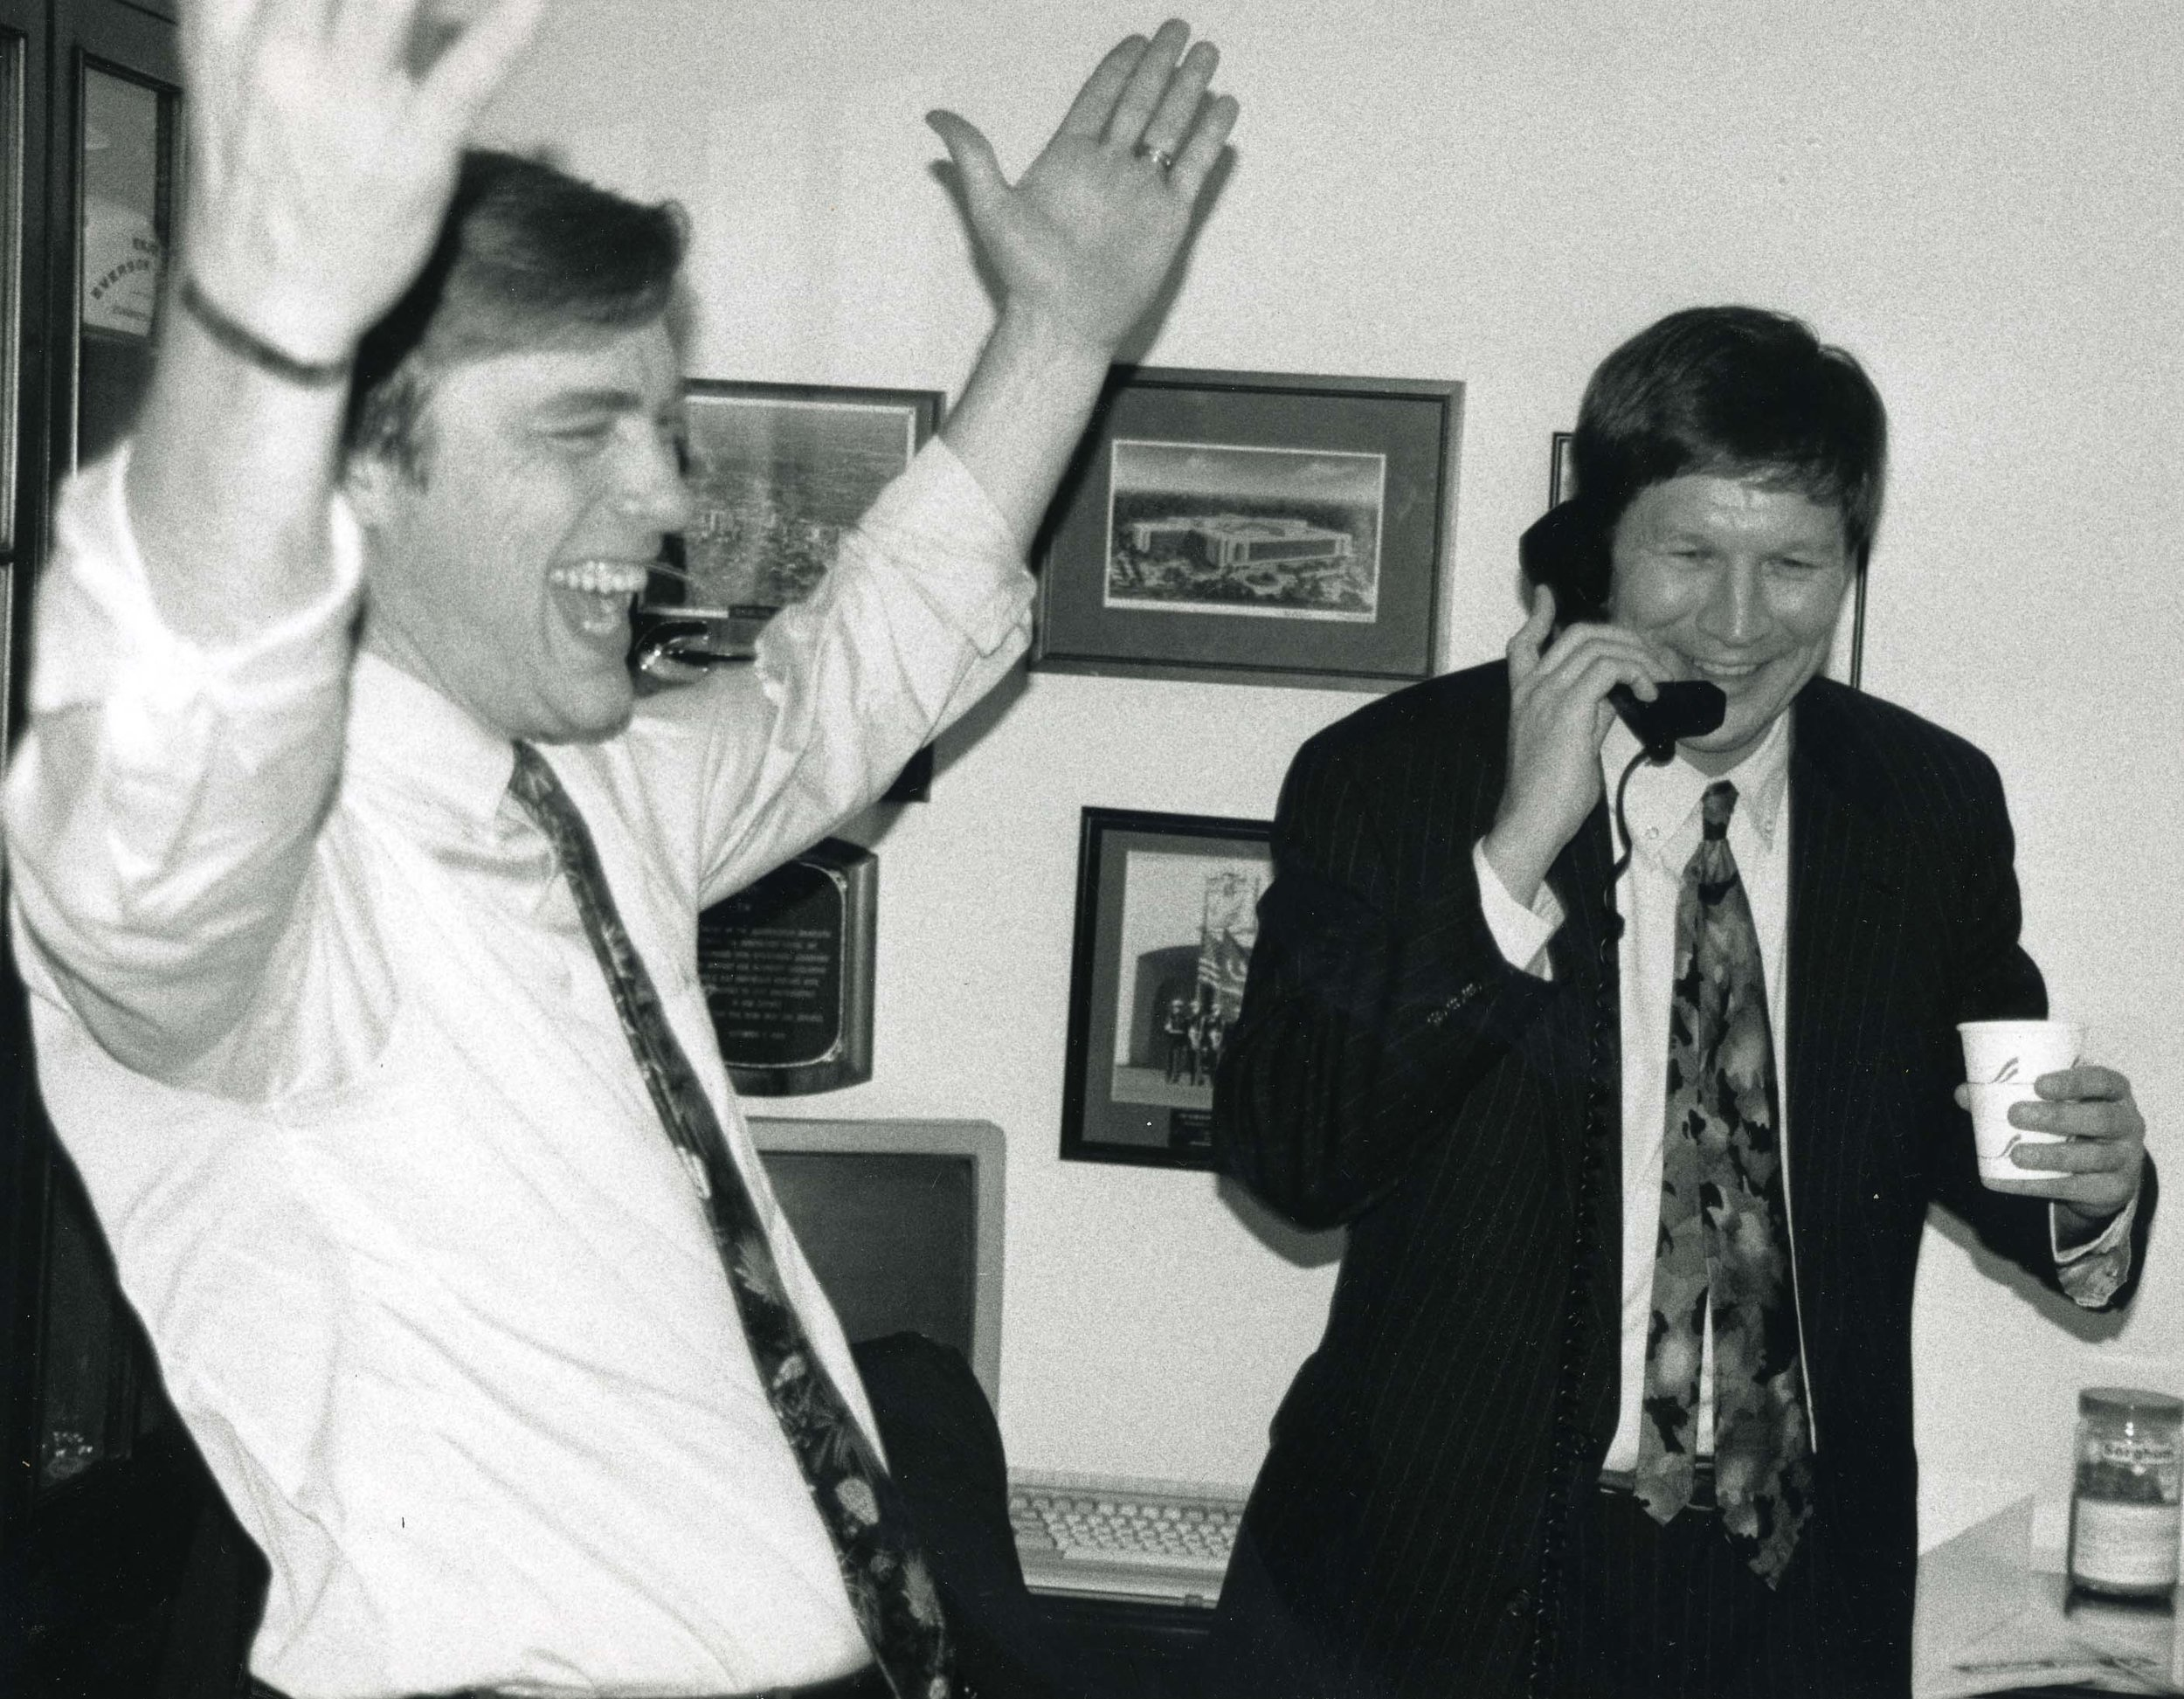 In 1993, then Cong. John Kasich teamed with Democrat Cong. Tim Penny to propose the Penny-Kasich Deficit Reduction Amendment. Though it was defeated, this was an important step on the path to a balanced federal budget.